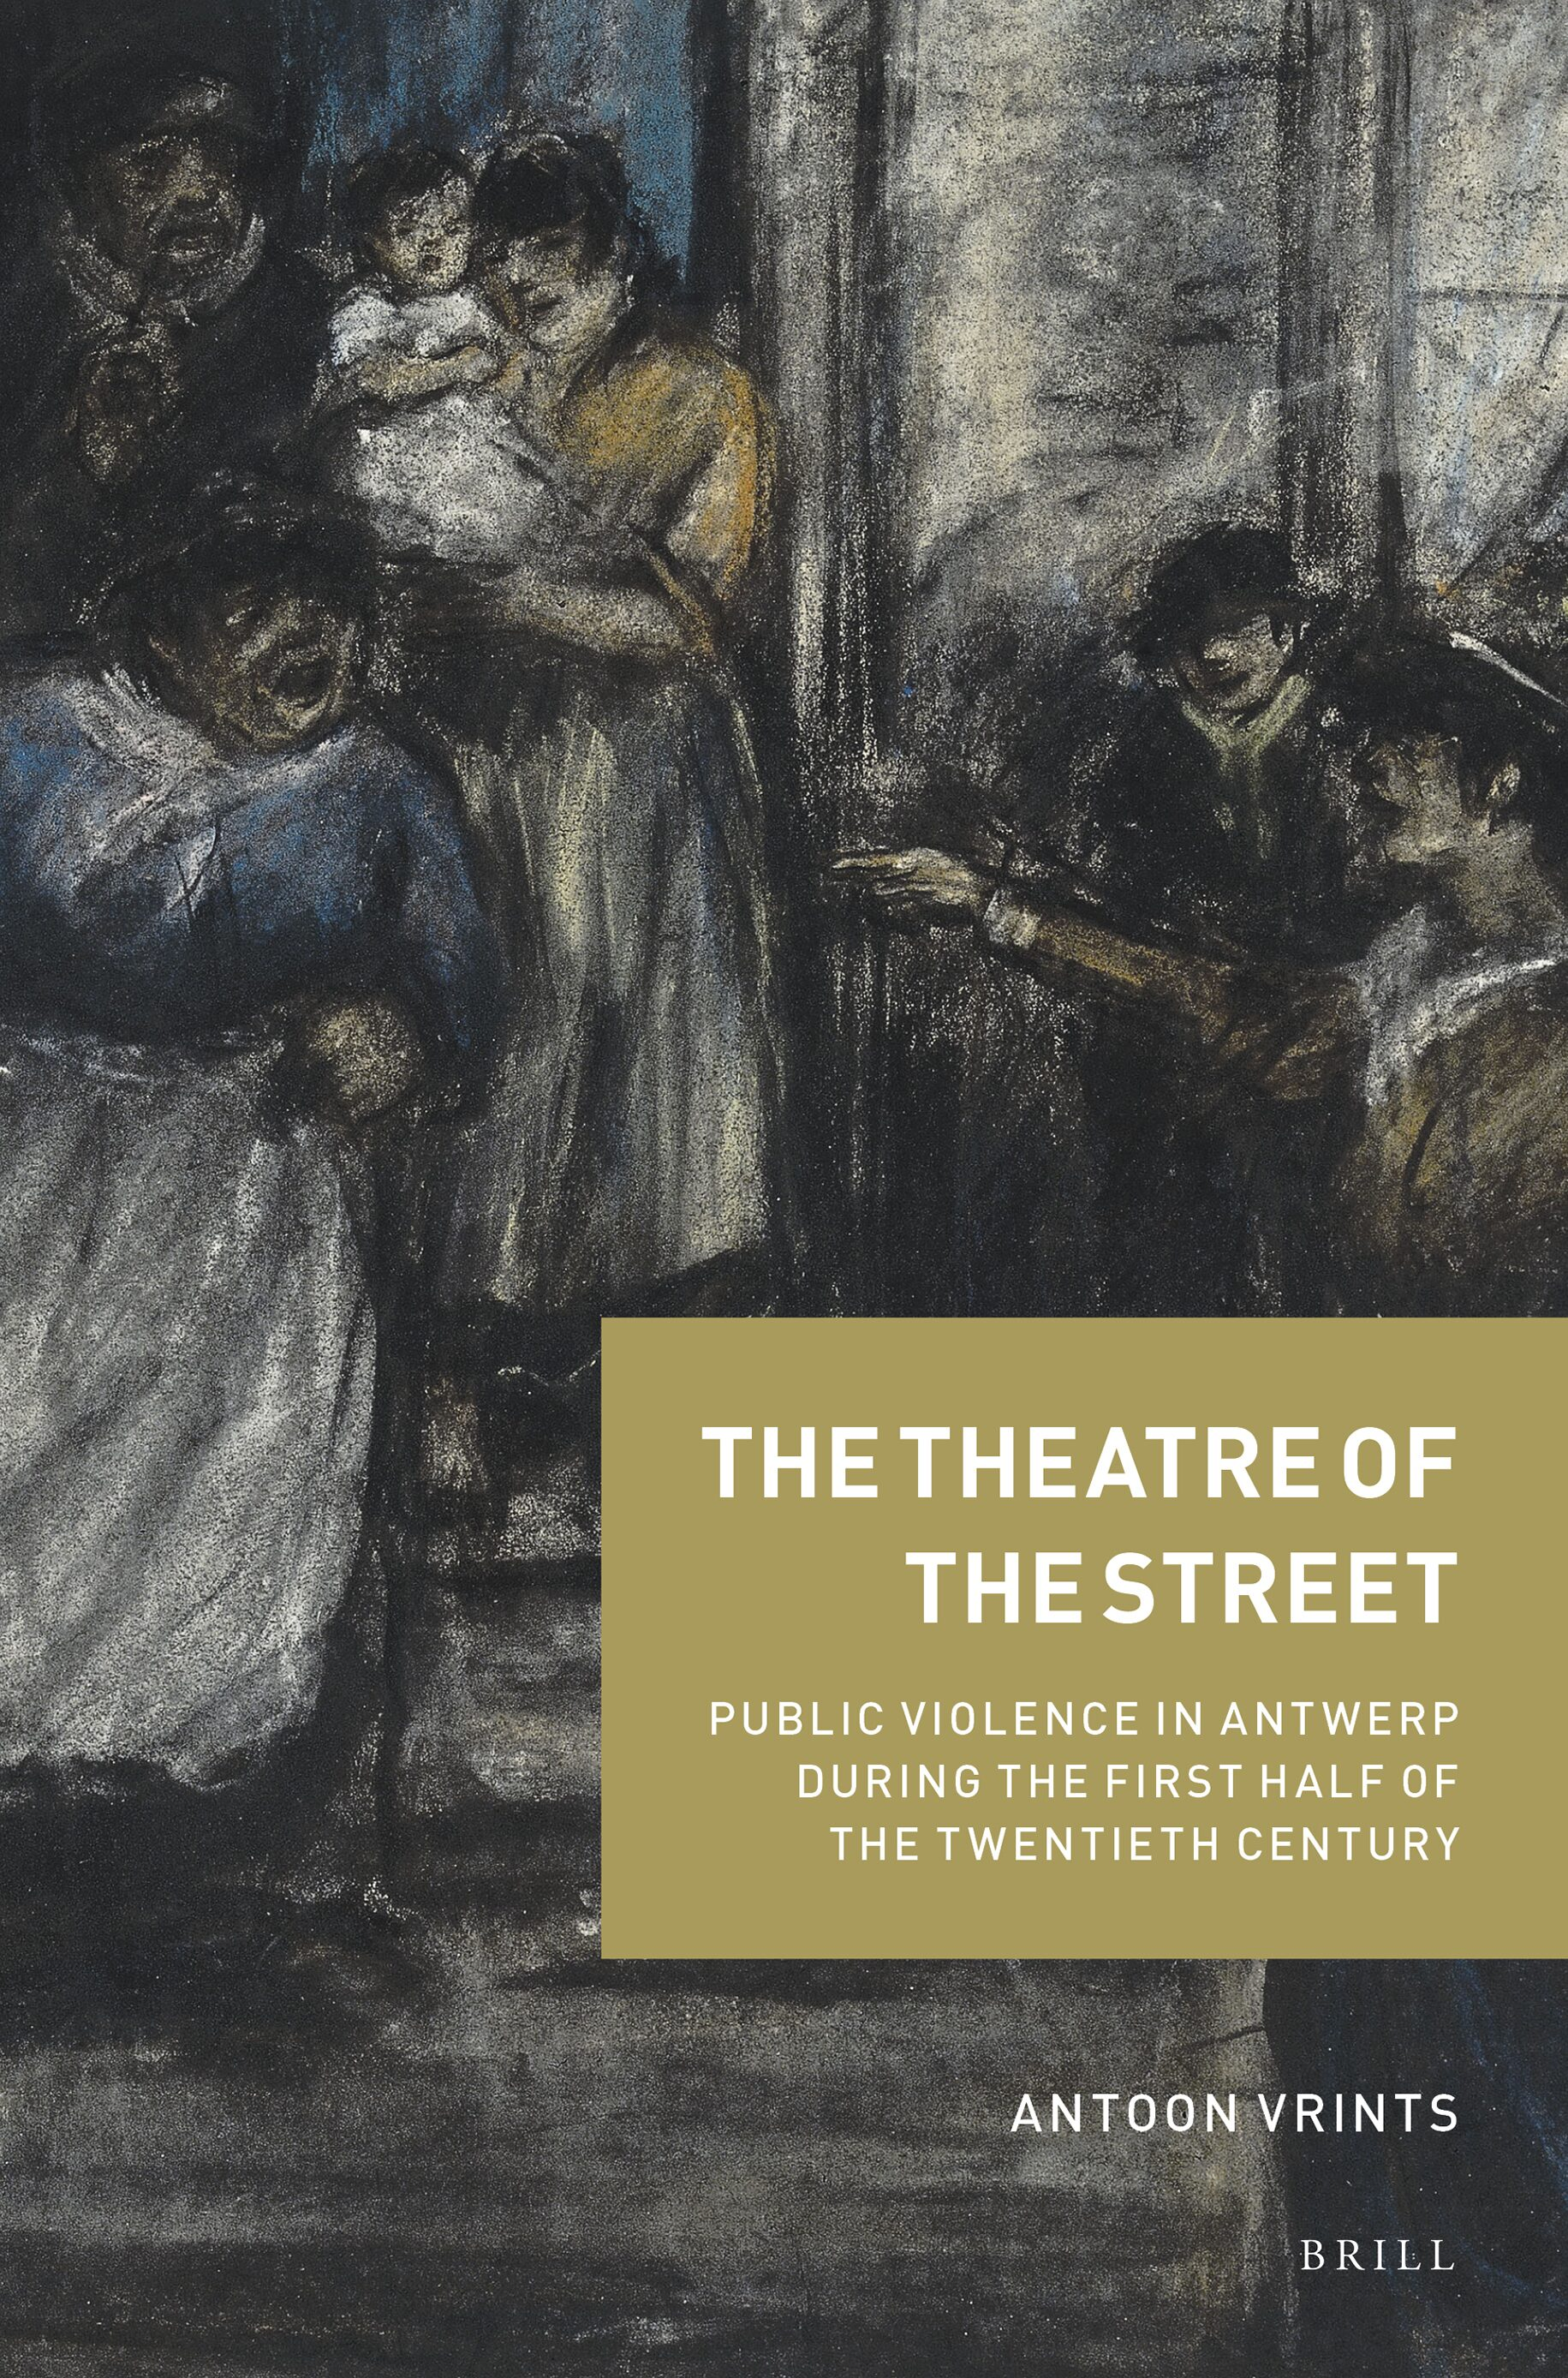 An Indecent Obsession 1985 values behind words in: the theatre of the street